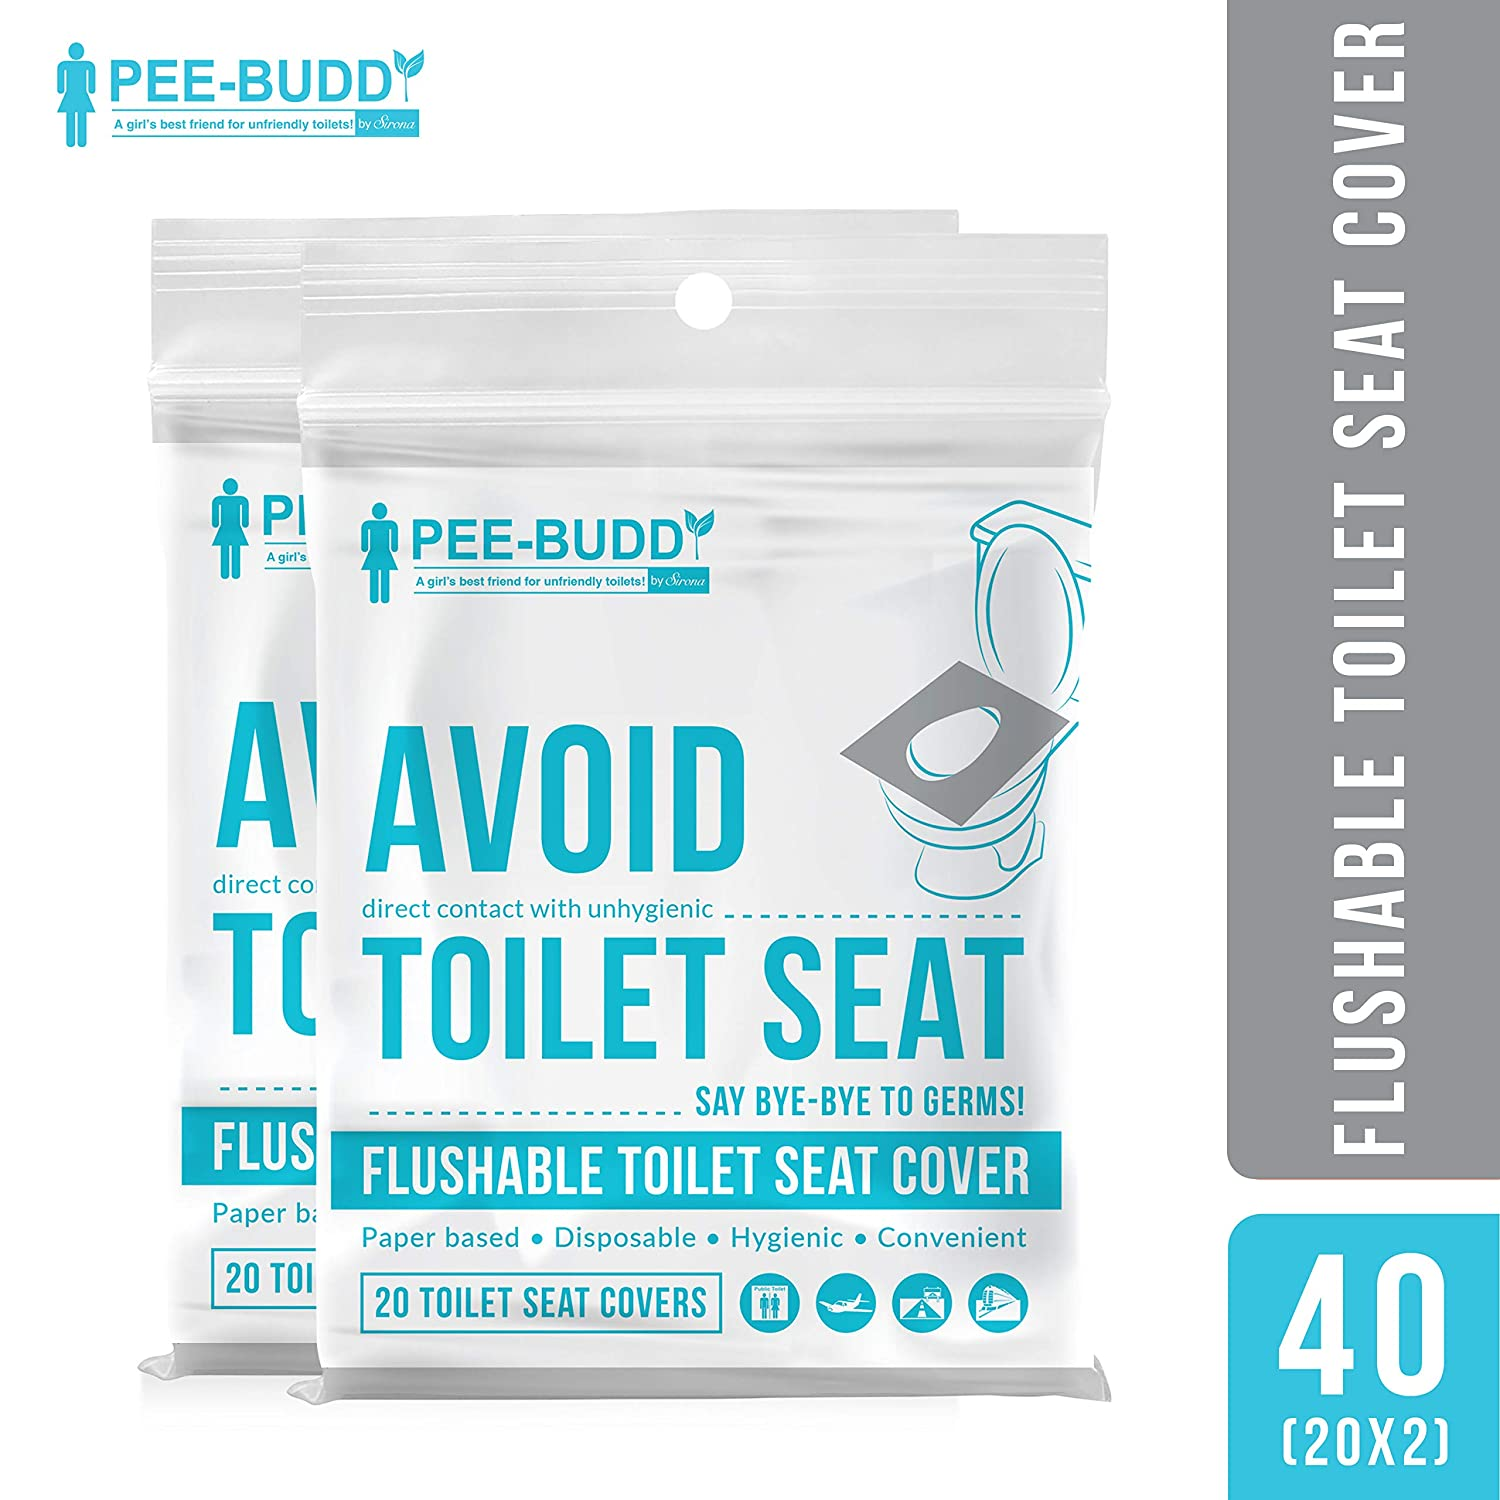 Peebuddy Flushable And Disposable Paper Toilet Seat Covers